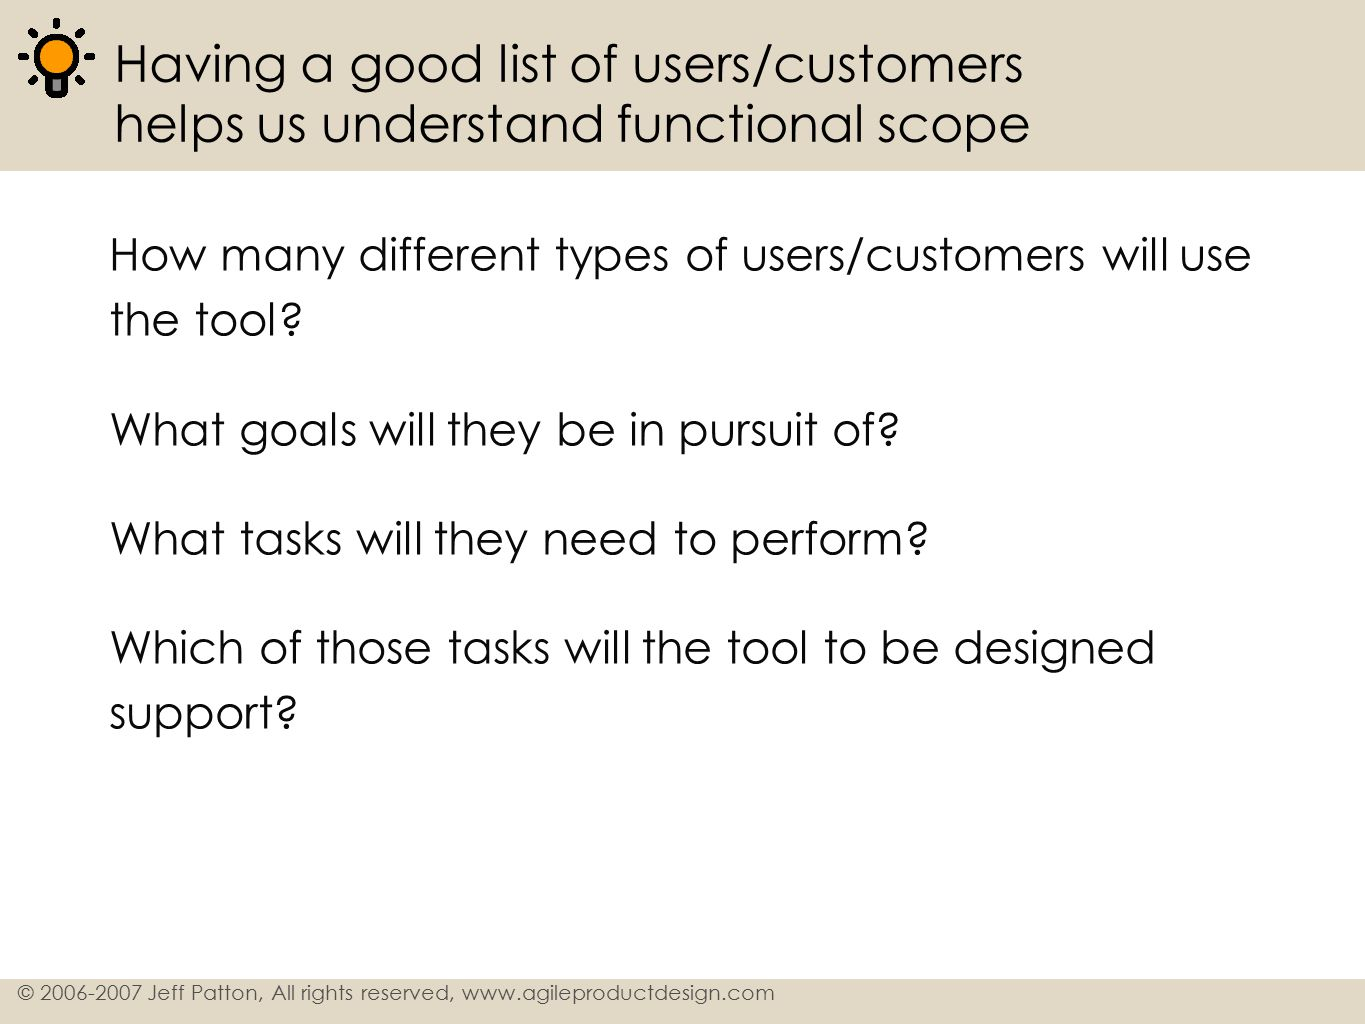 7 © 2006-2007 Jeff Patton, All rights reserved, www.agileproductdesign.com Profile users/customers to identify relevant characteristics about them To help understanding the characteristics of users/customers that might have bearing on the design, construct a profile containing information about the type of user relevant to the tool being created.